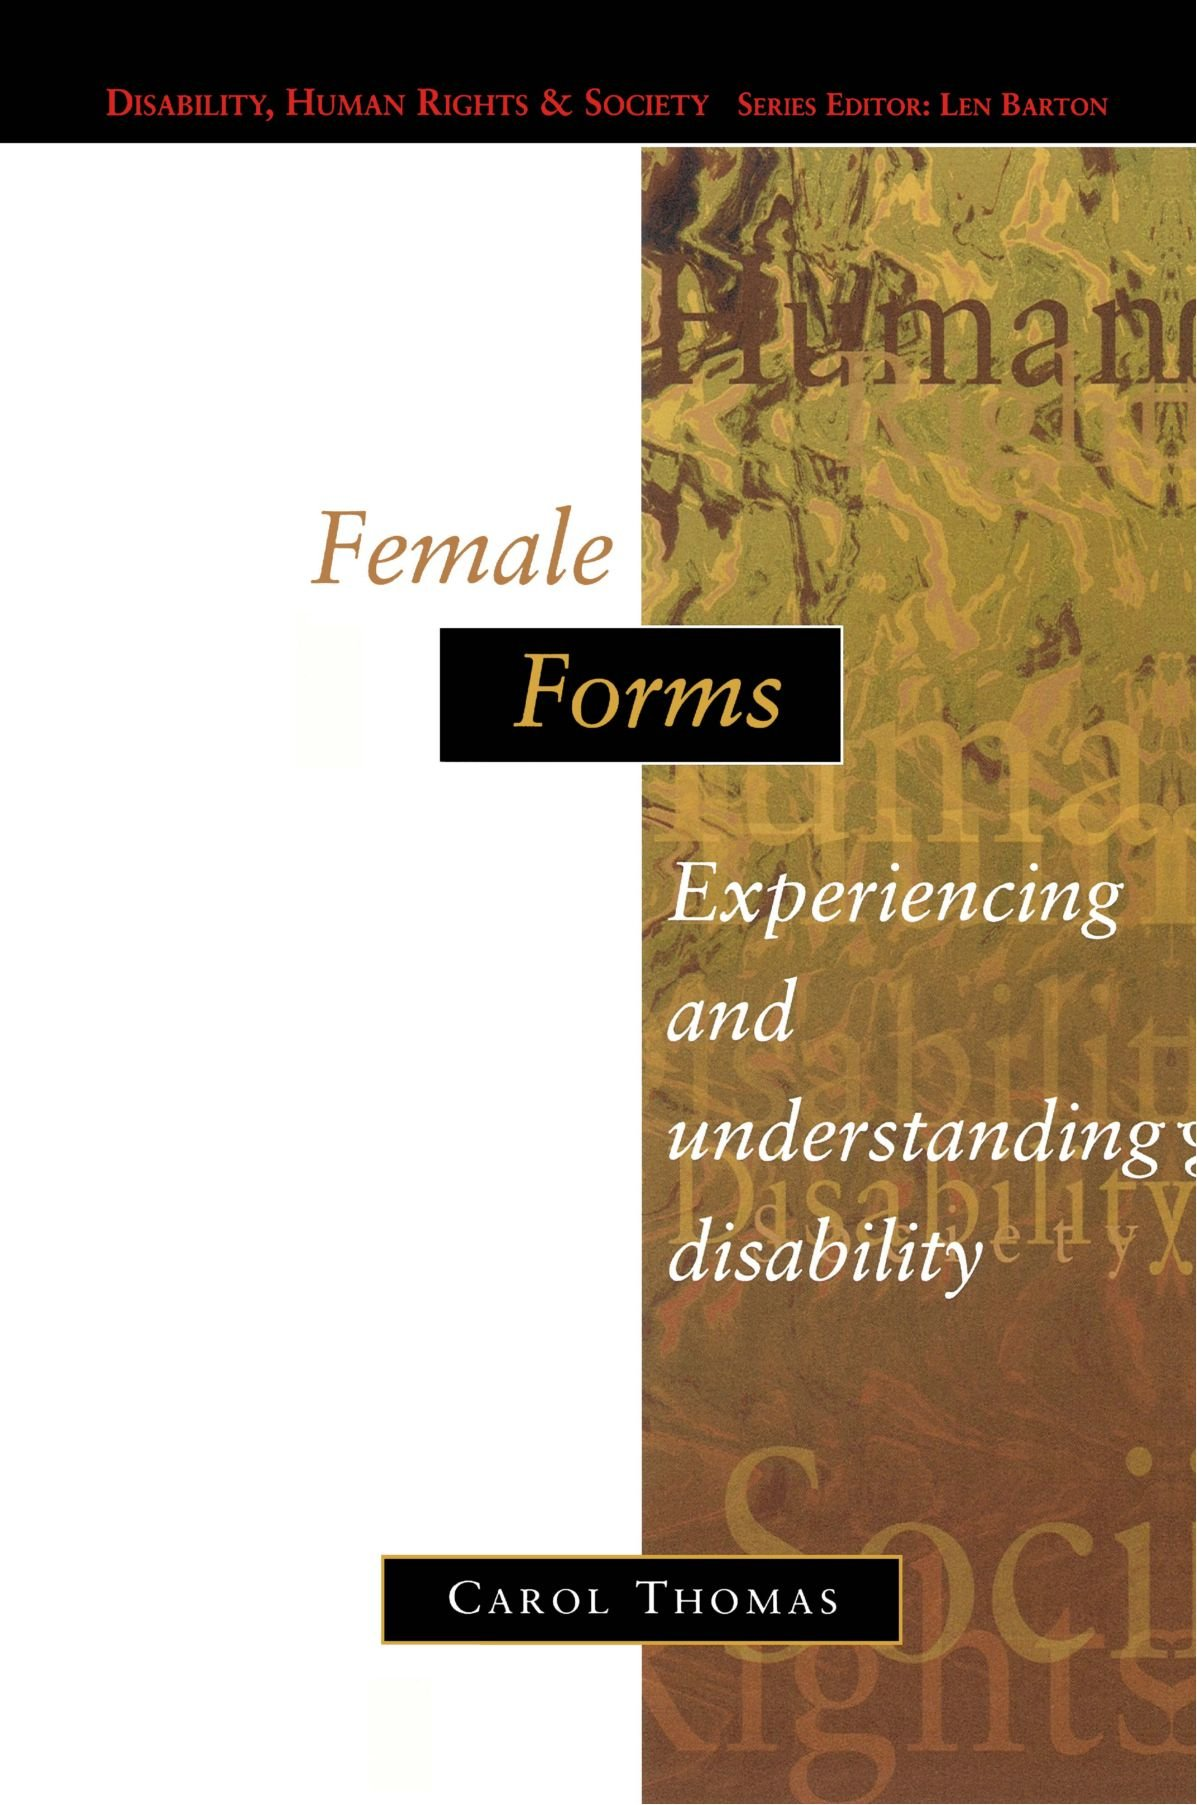 Female Forms  Experiencing And Understanding Disability  Disability Human Rights And Society